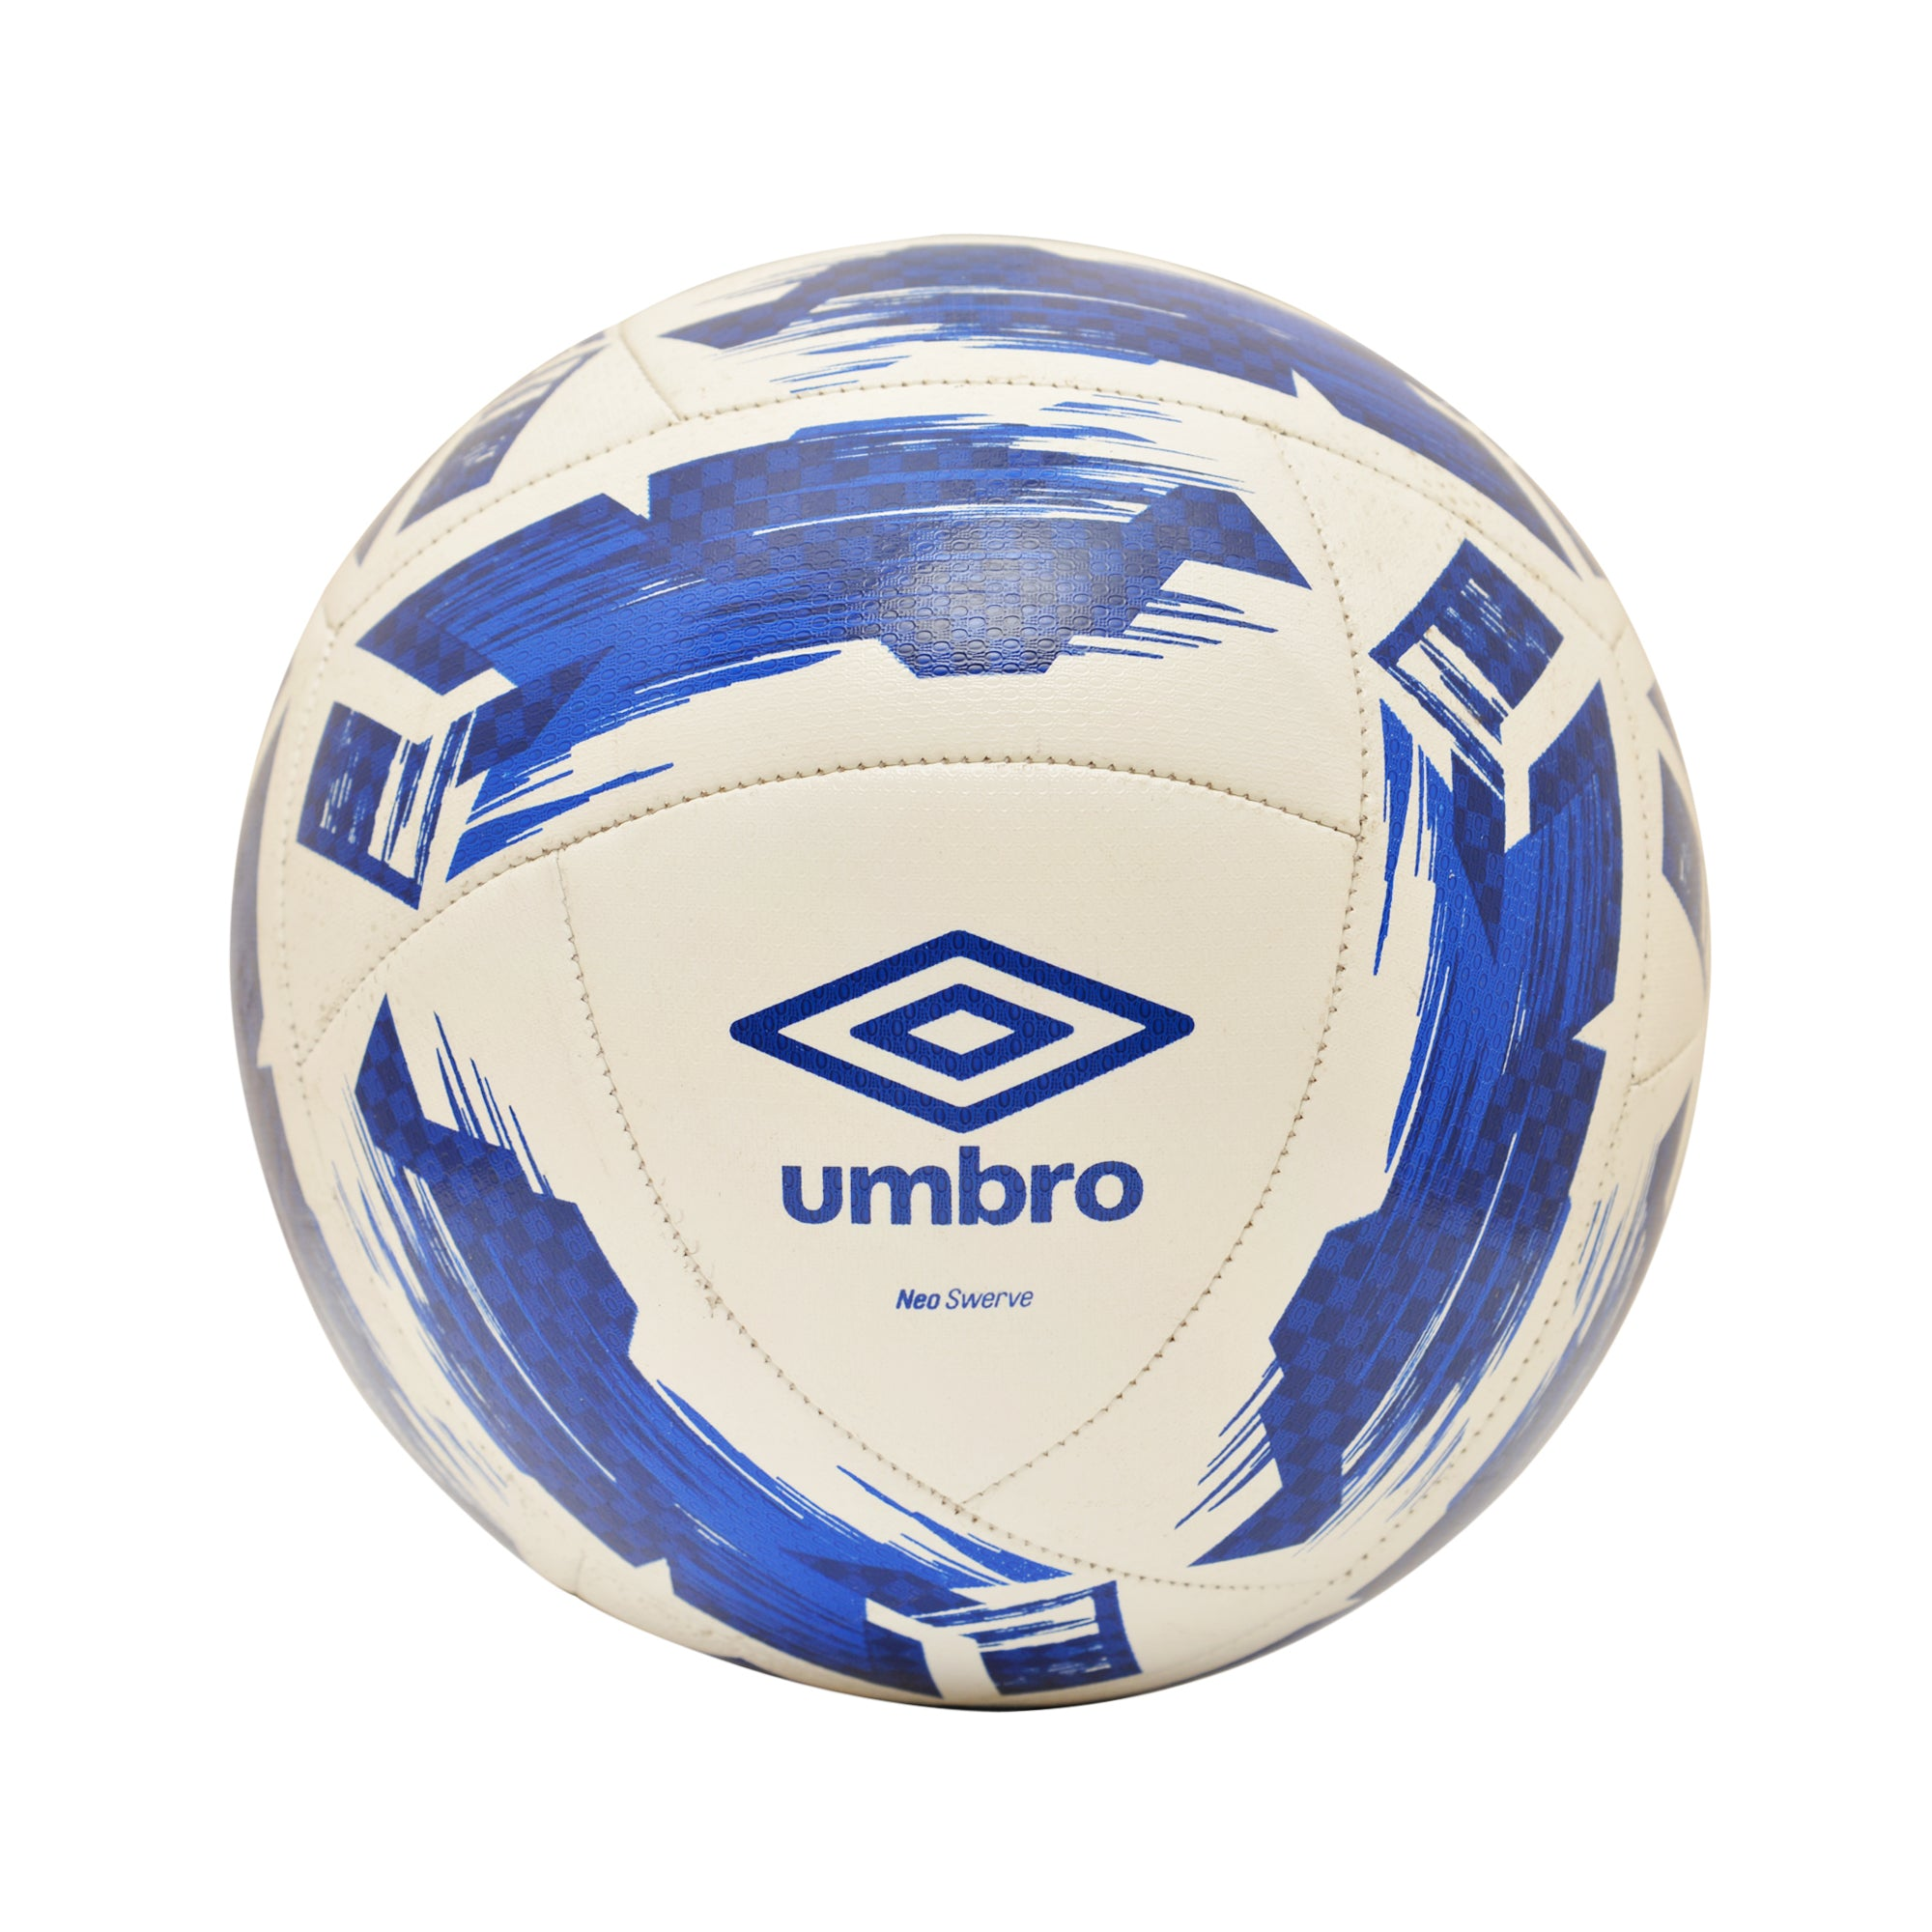 PTYFC Player Football - Umbro Neo Swerve - White/Blue